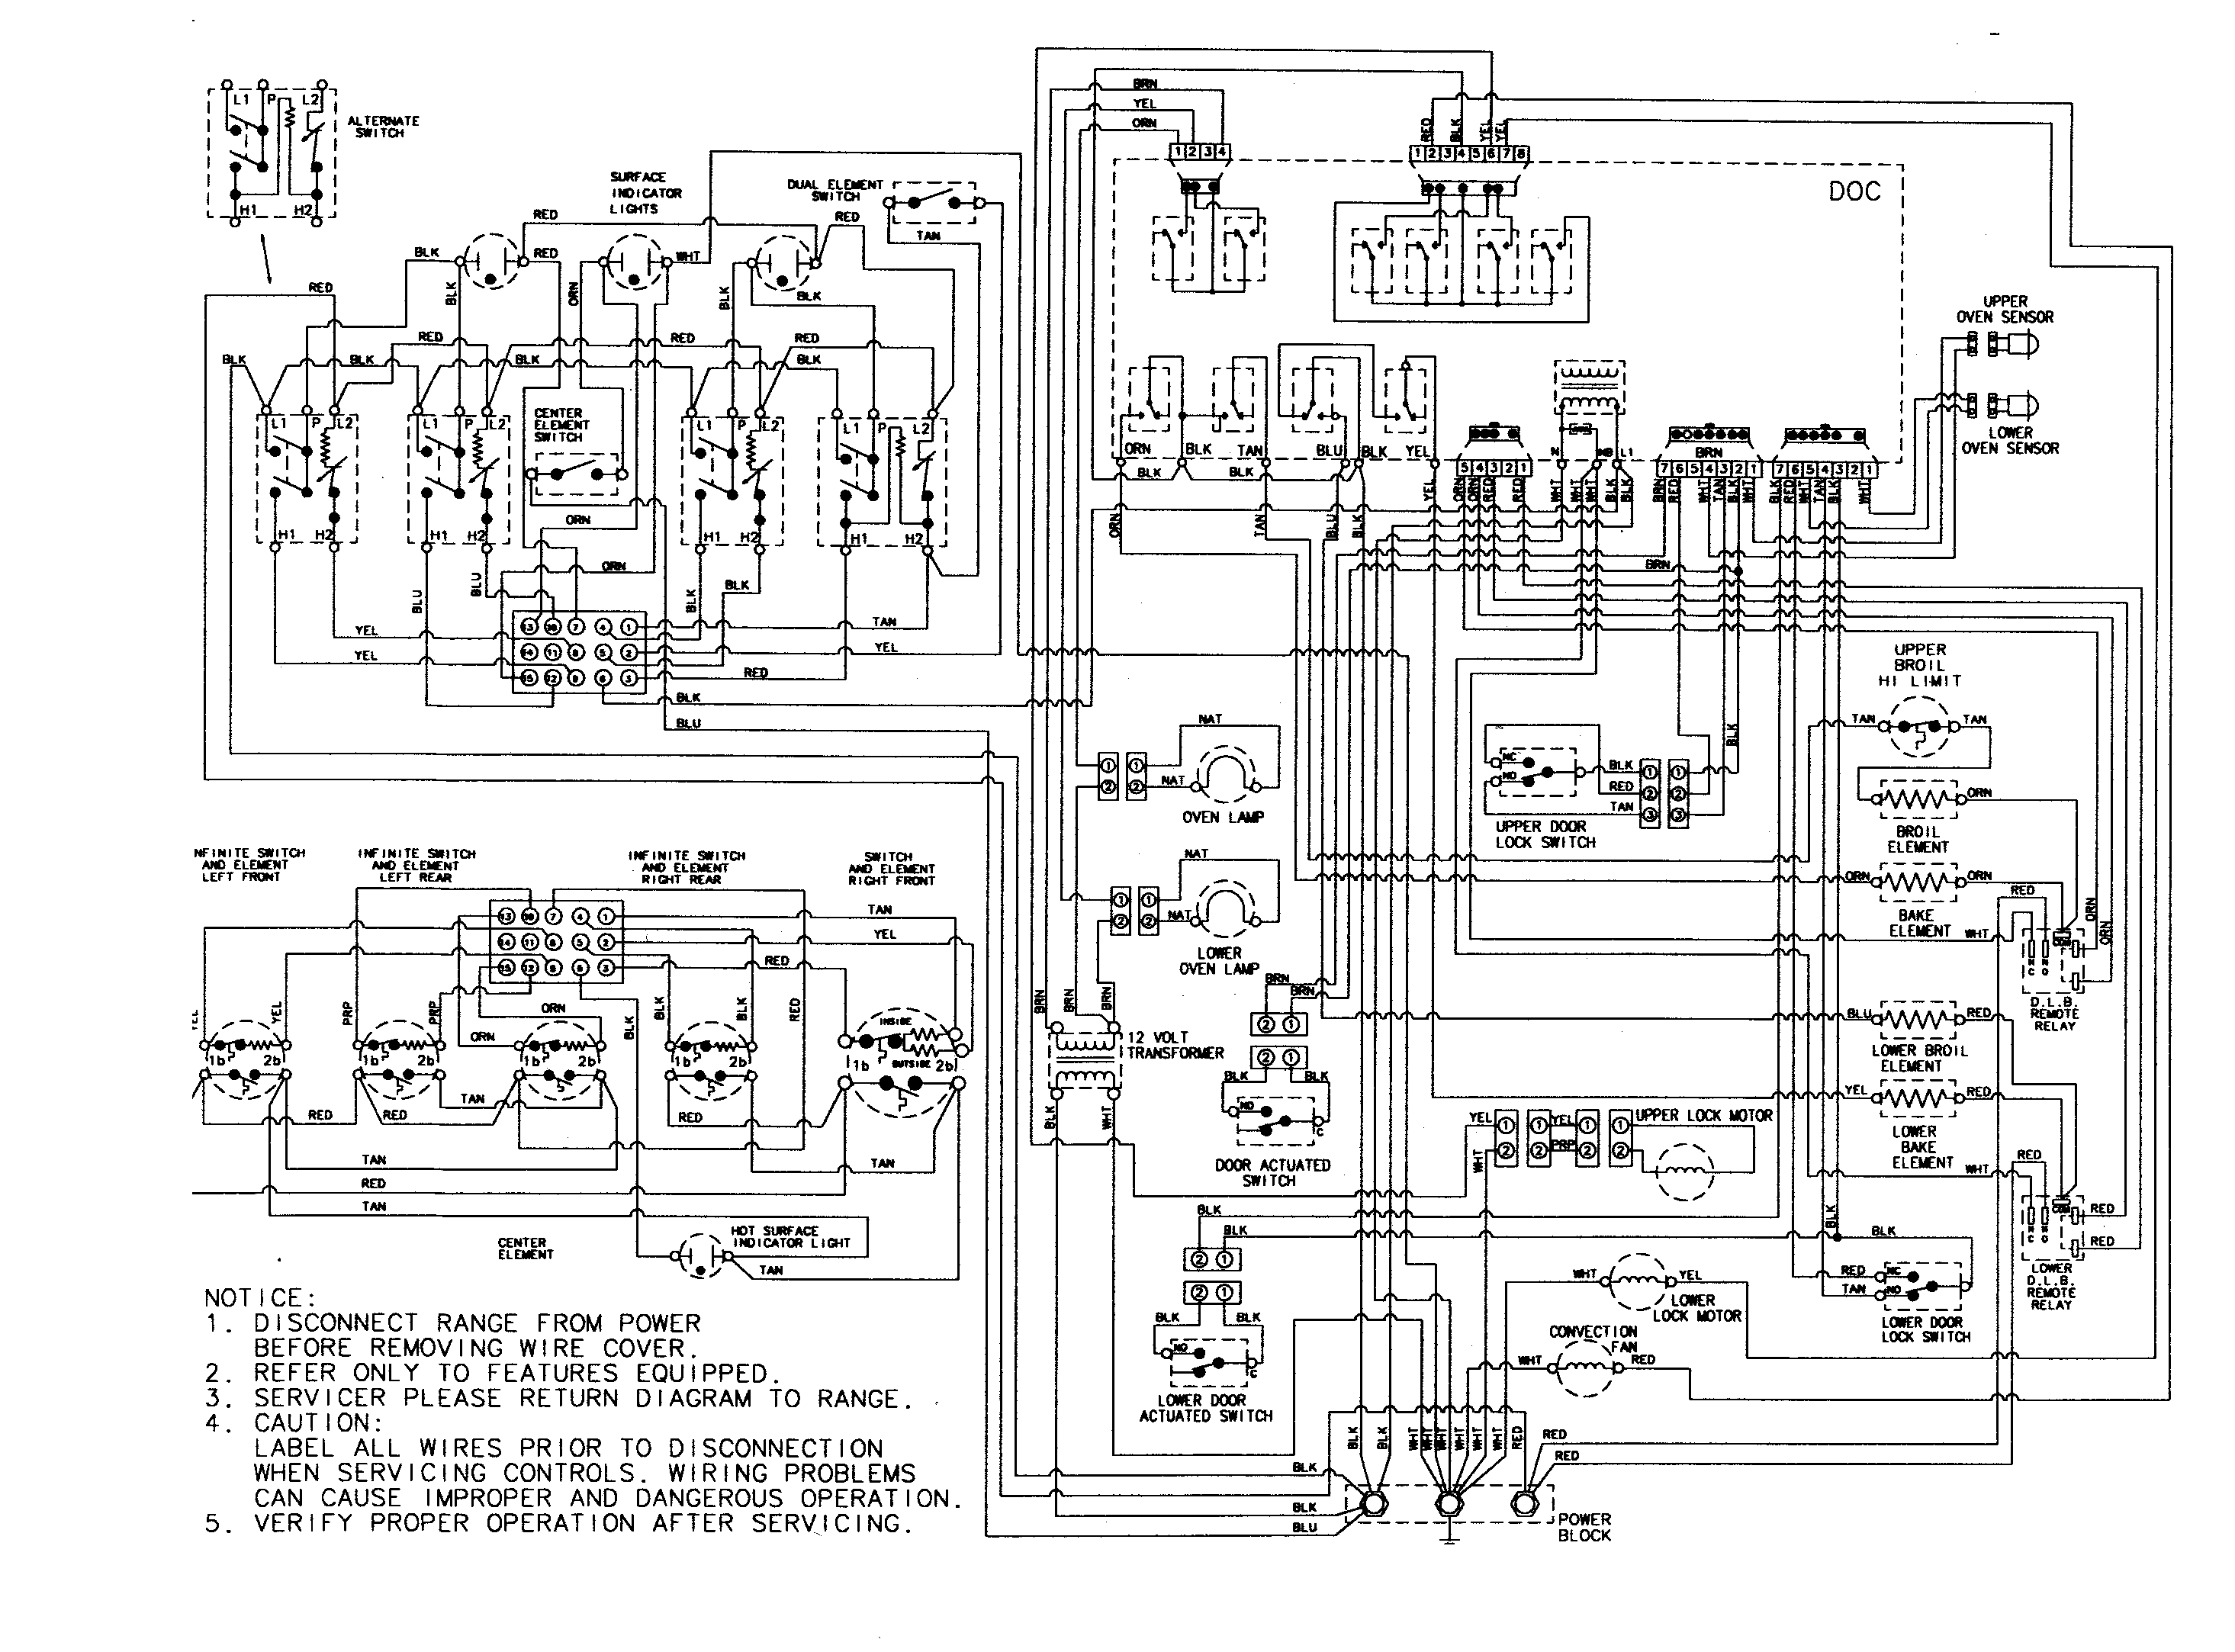 maytag stove element wiring diagram example electrical wiring rh cranejapan co maytag wiring diagrams s68pxmbp-1043